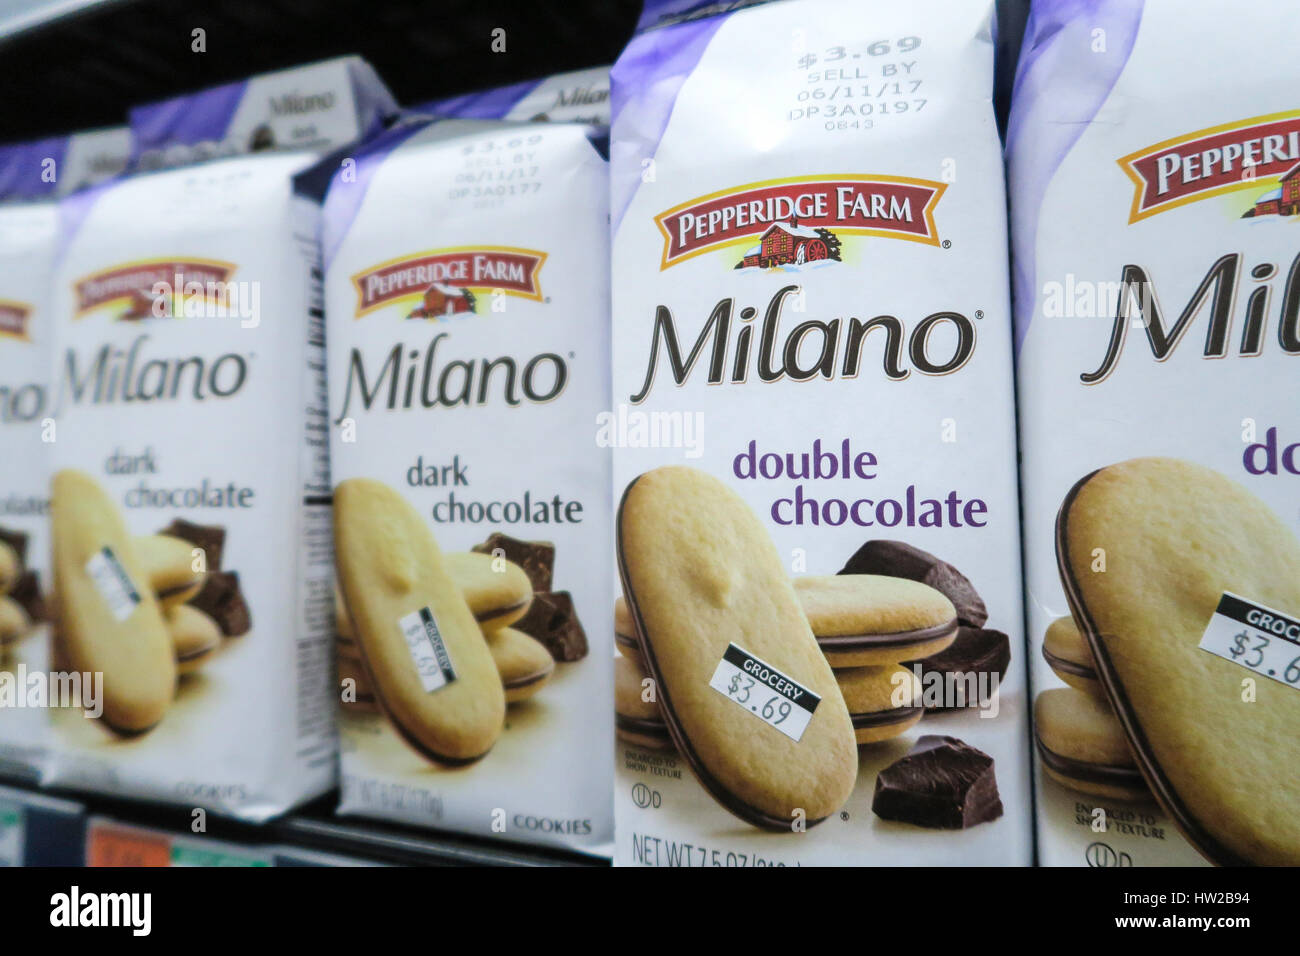 Bags of Pepperidge Farms Milano Double Chocolate Cookies, D'Agostino Grocery Store in New York City, United - Stock Image